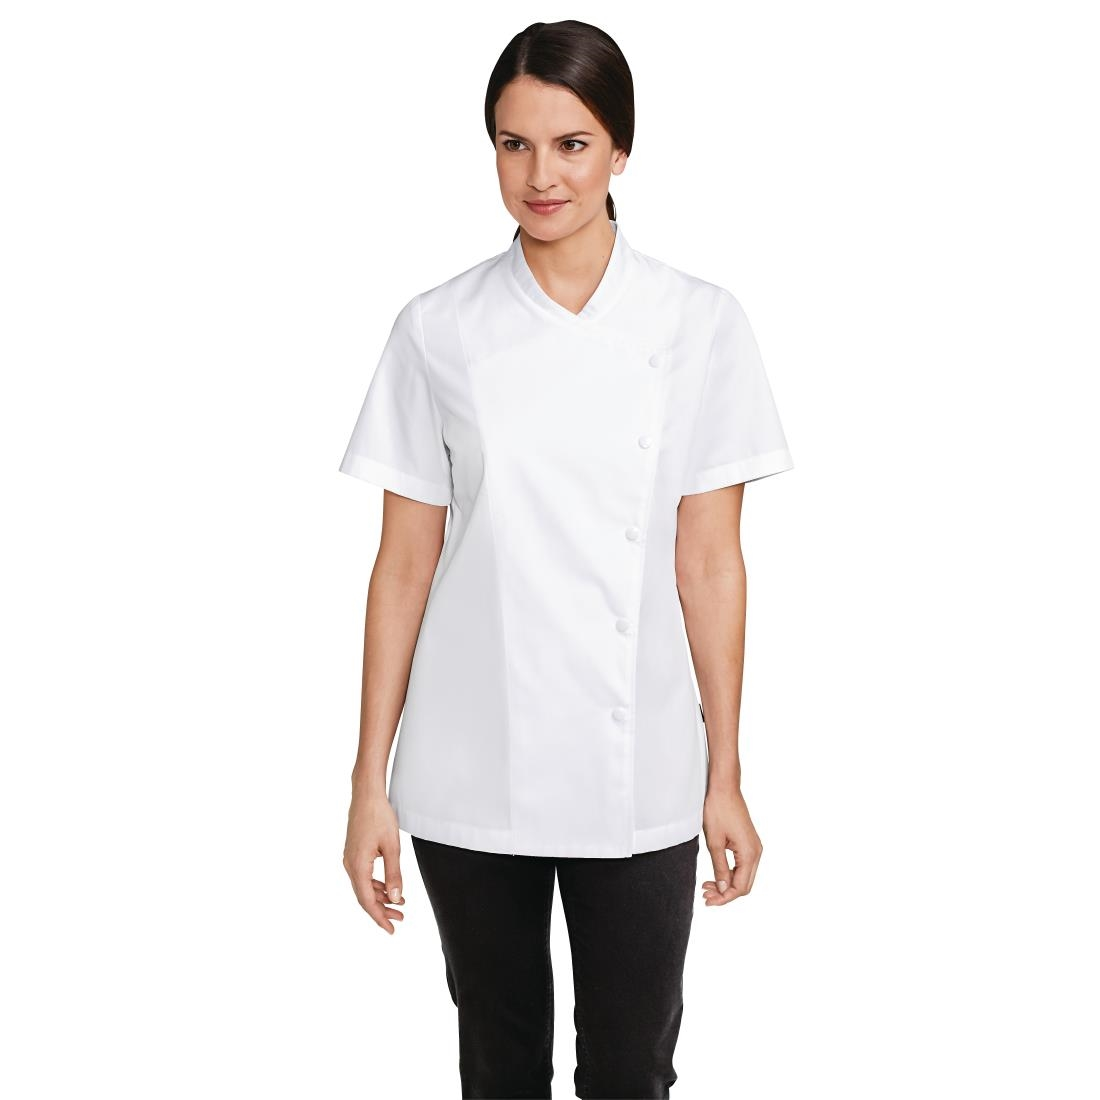 Click to view product details and reviews for Bragard Julia Jacket White Size L.